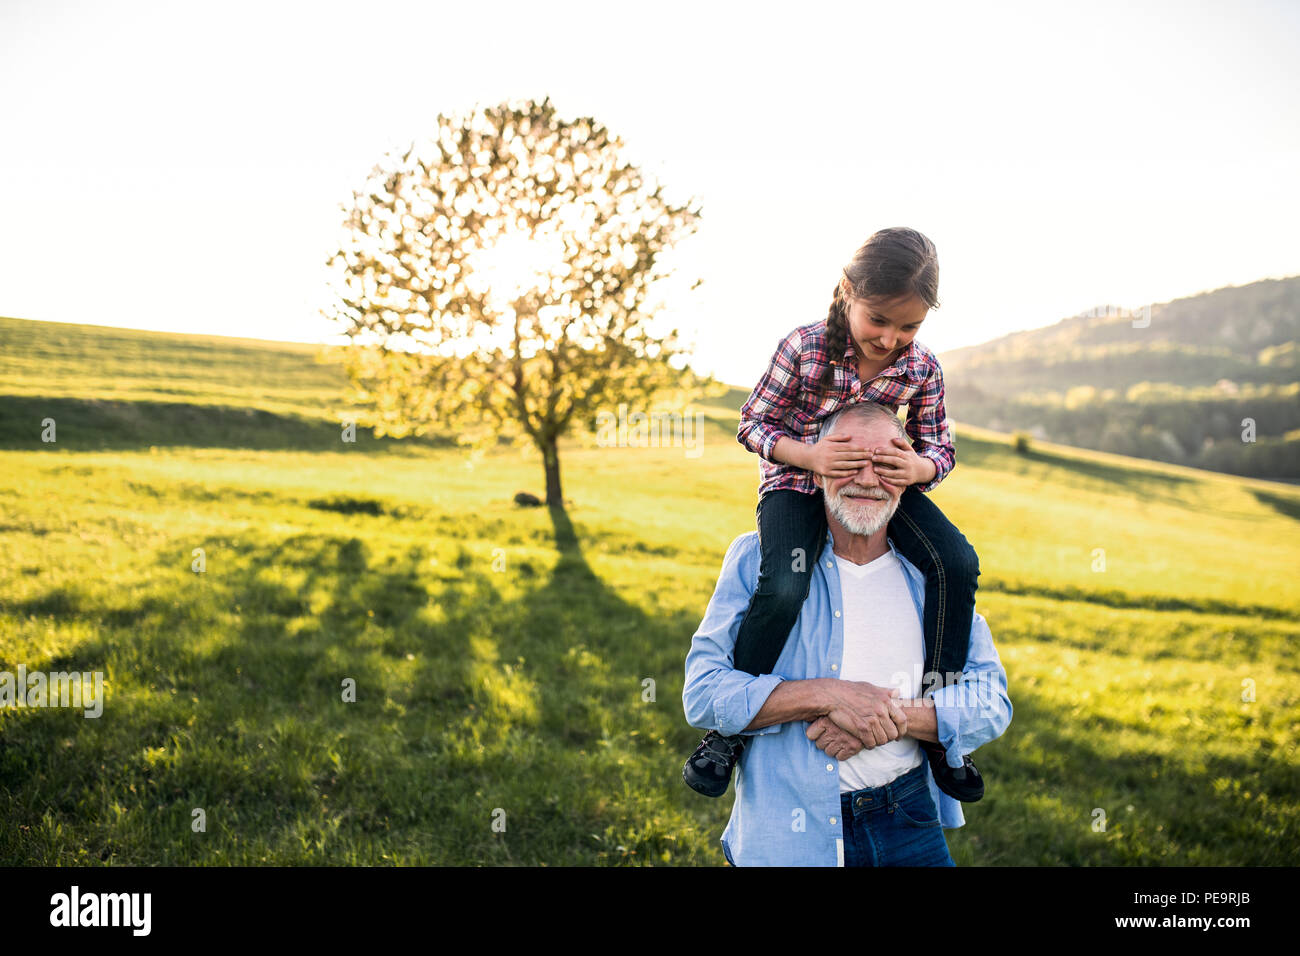 A senior grandfather giving a small granddaughter a piggyback ride in nature. - Stock Image